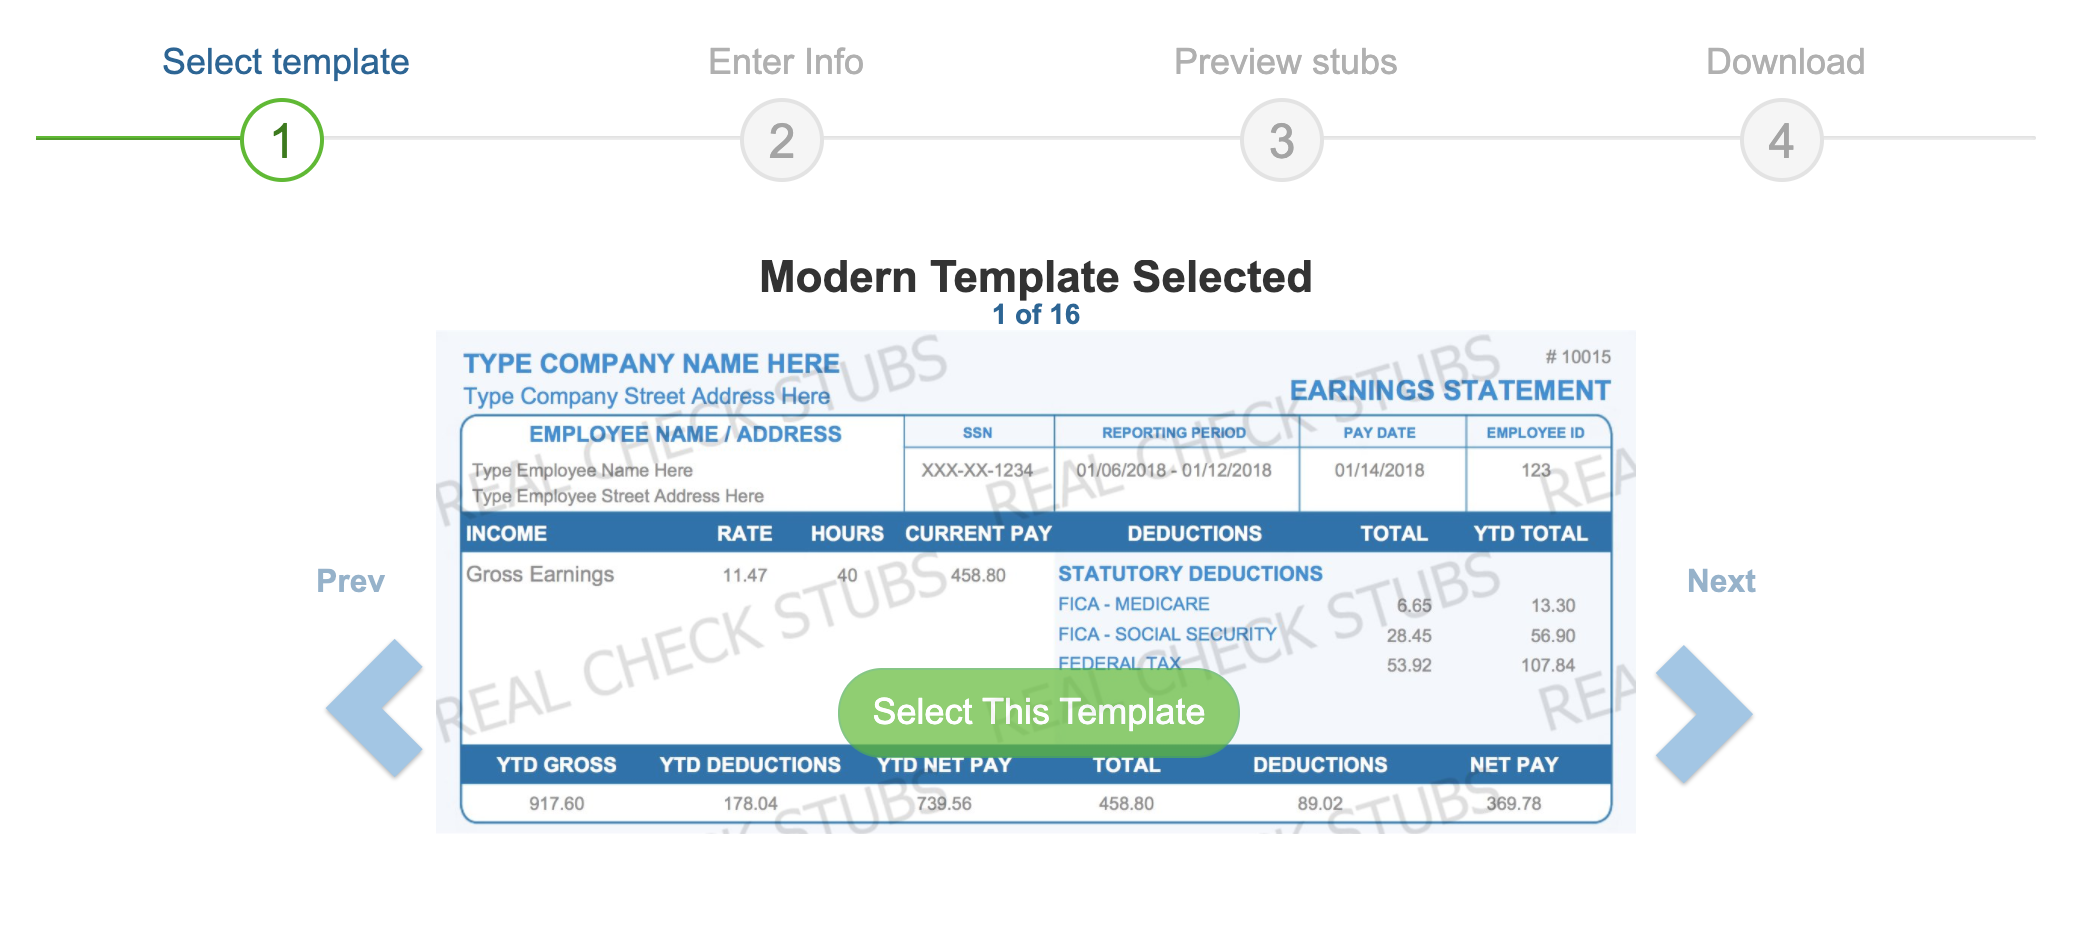 select template realcheckstubs.png